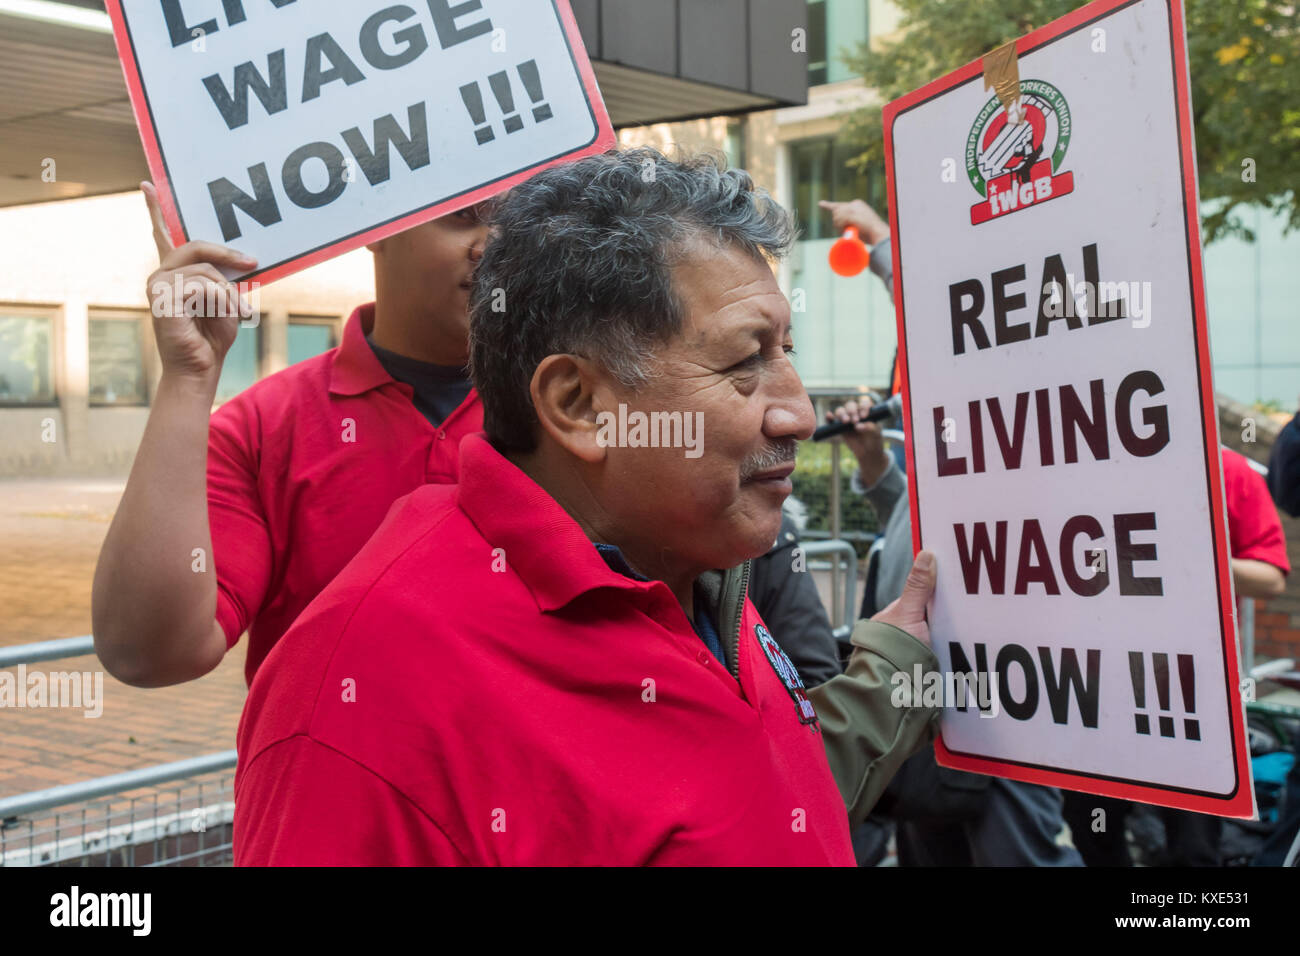 IWGB cleaners hold up placards 'Real Livng Wage Now!!' as the walk around in front of Southwark Crown Court - Stock Image